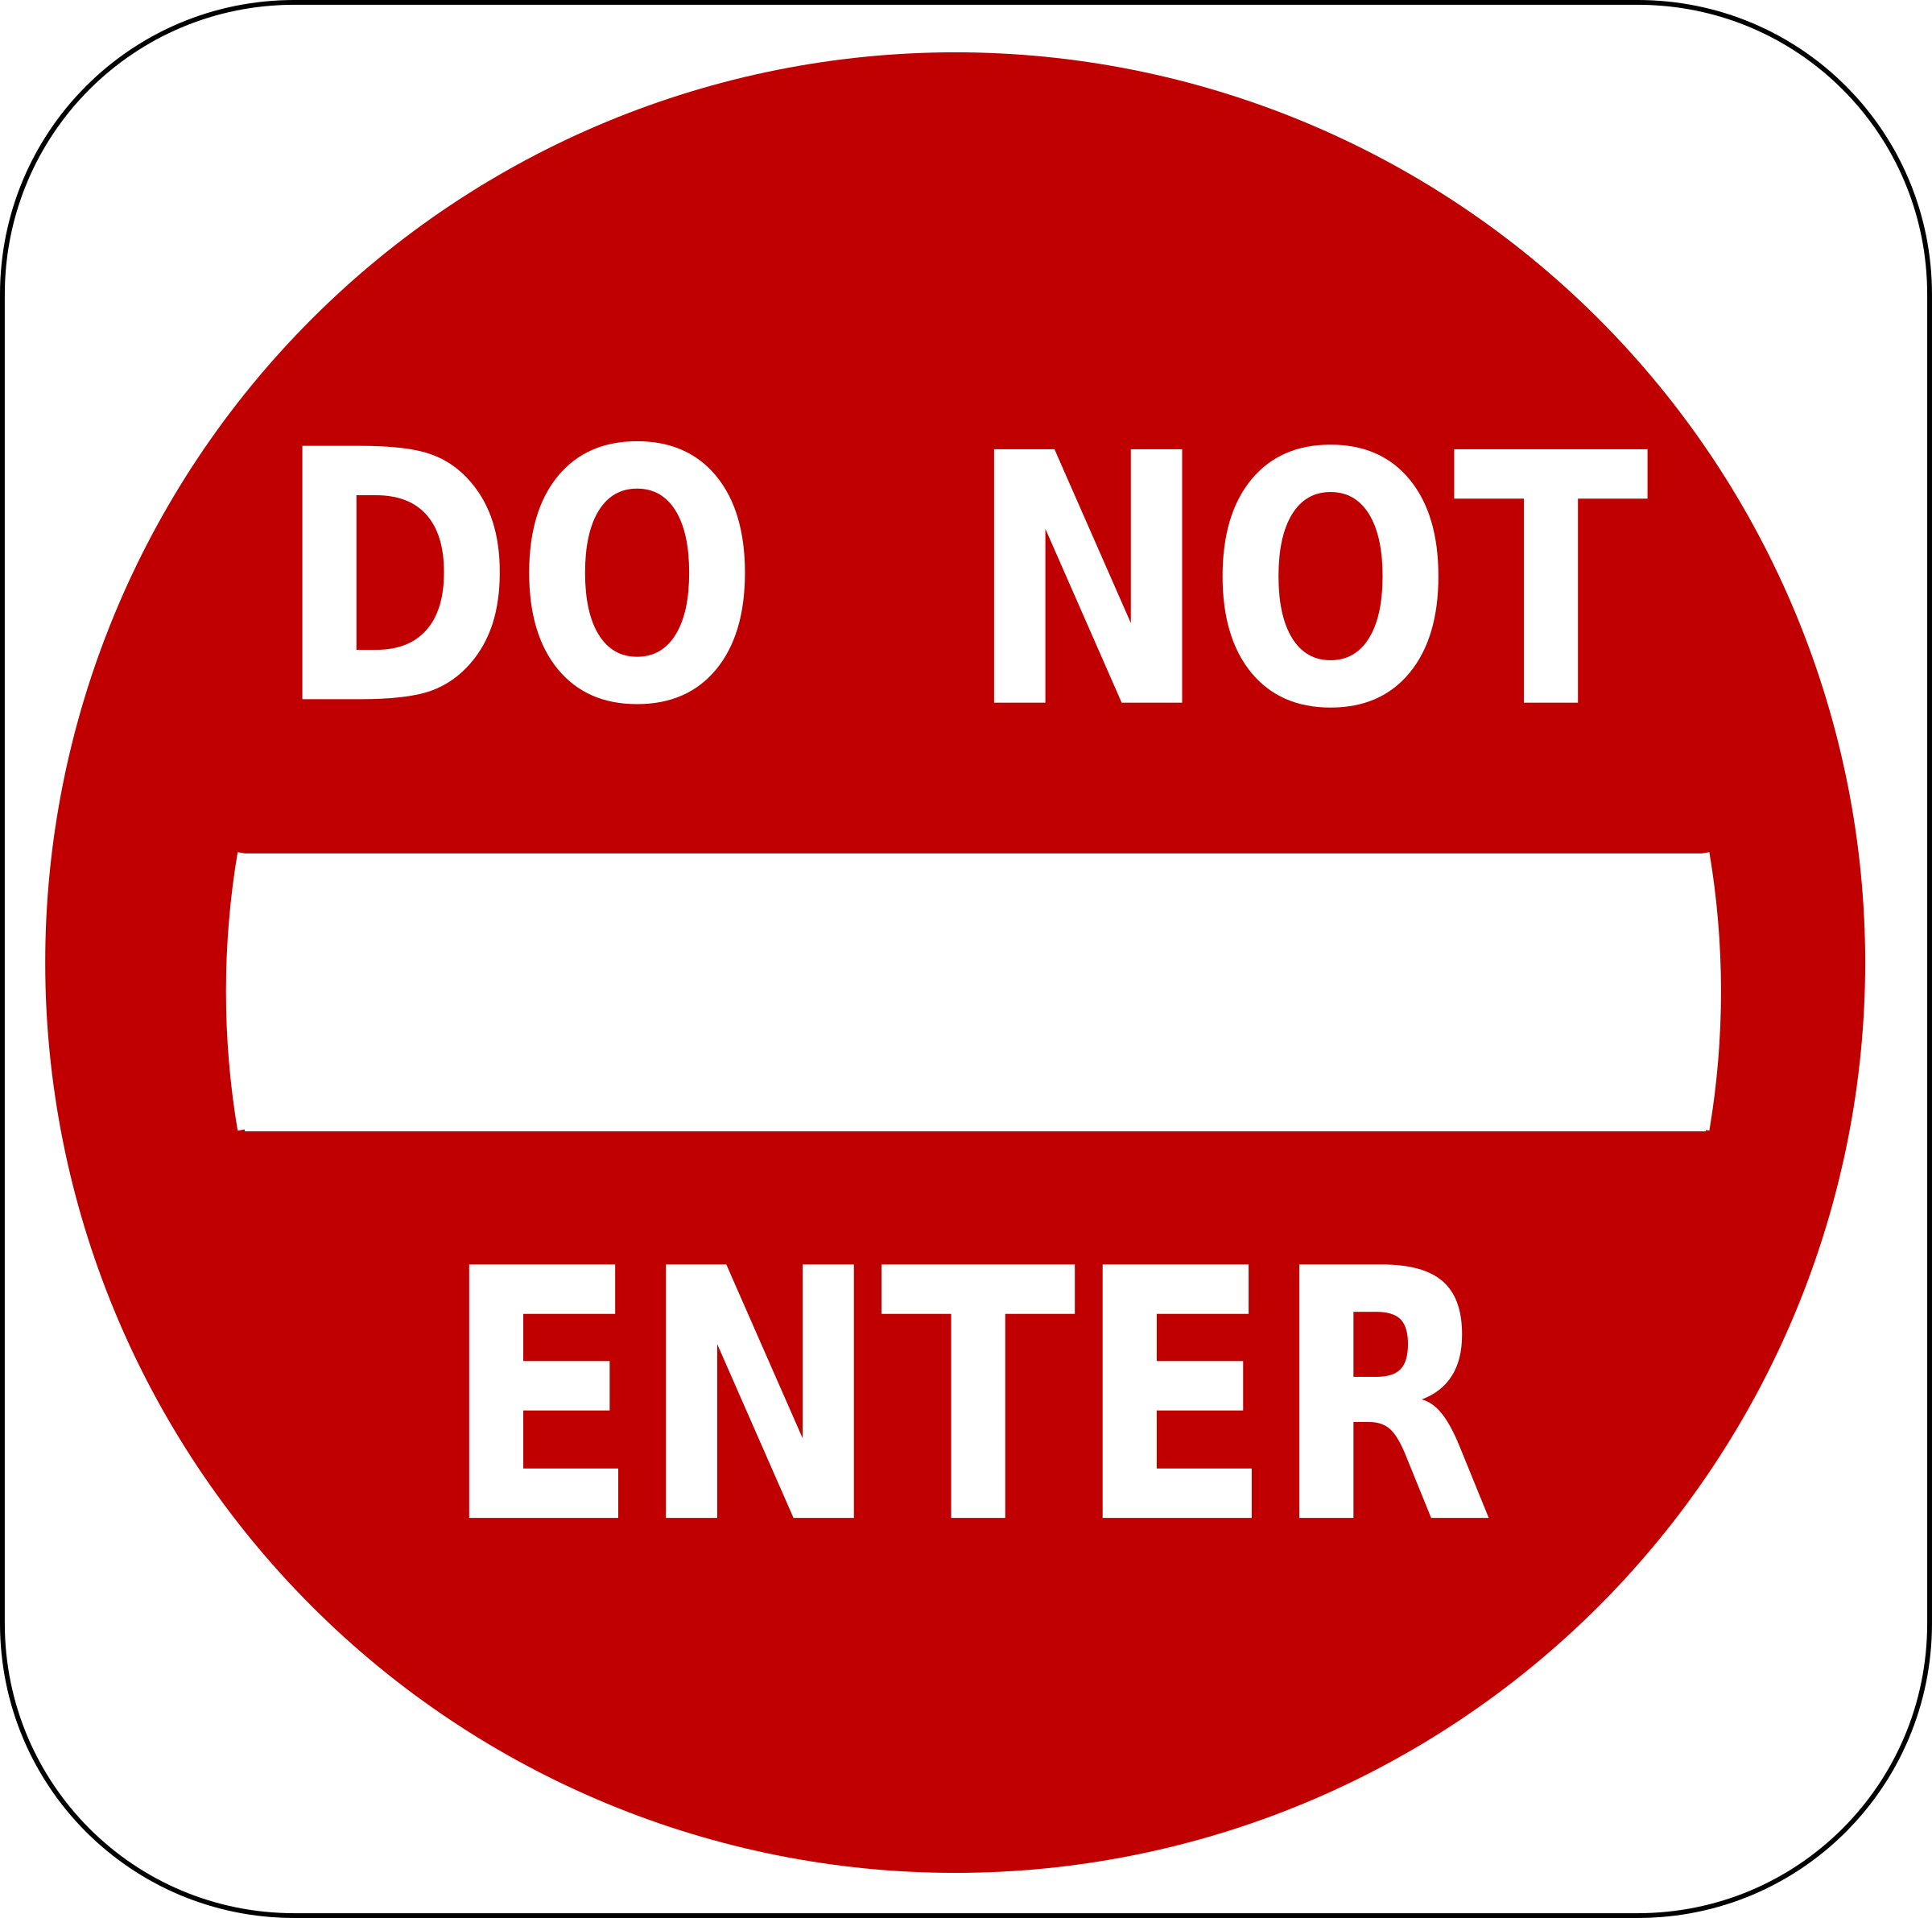 do not enter sign by Anonymous